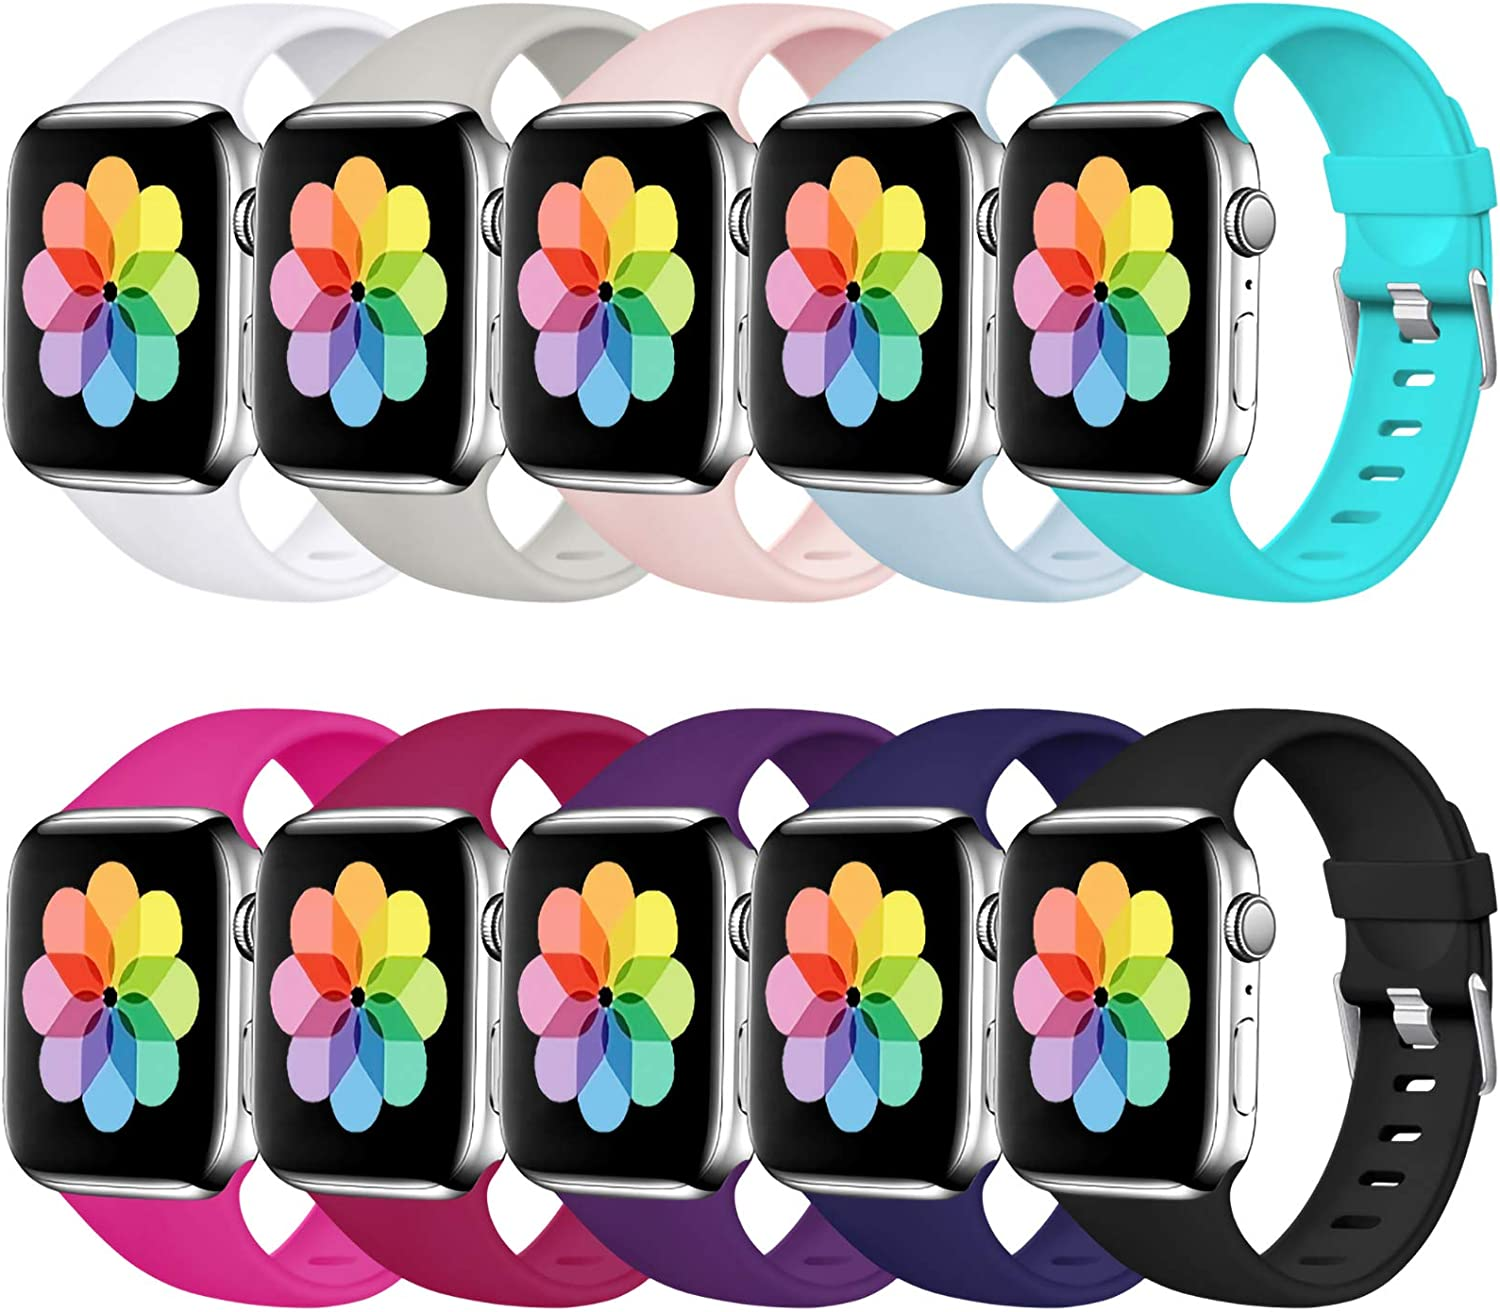 Haveda Sport Compatible for Apple Watch Band 40mm Series 6 Series 5 4, iWatch Bands 38mm Womens for Apple Watch SE, iwatch Series 3 2 1 Men, Waterproof band for Apple Watch 5, 10Pack 38mm/40mm S/M